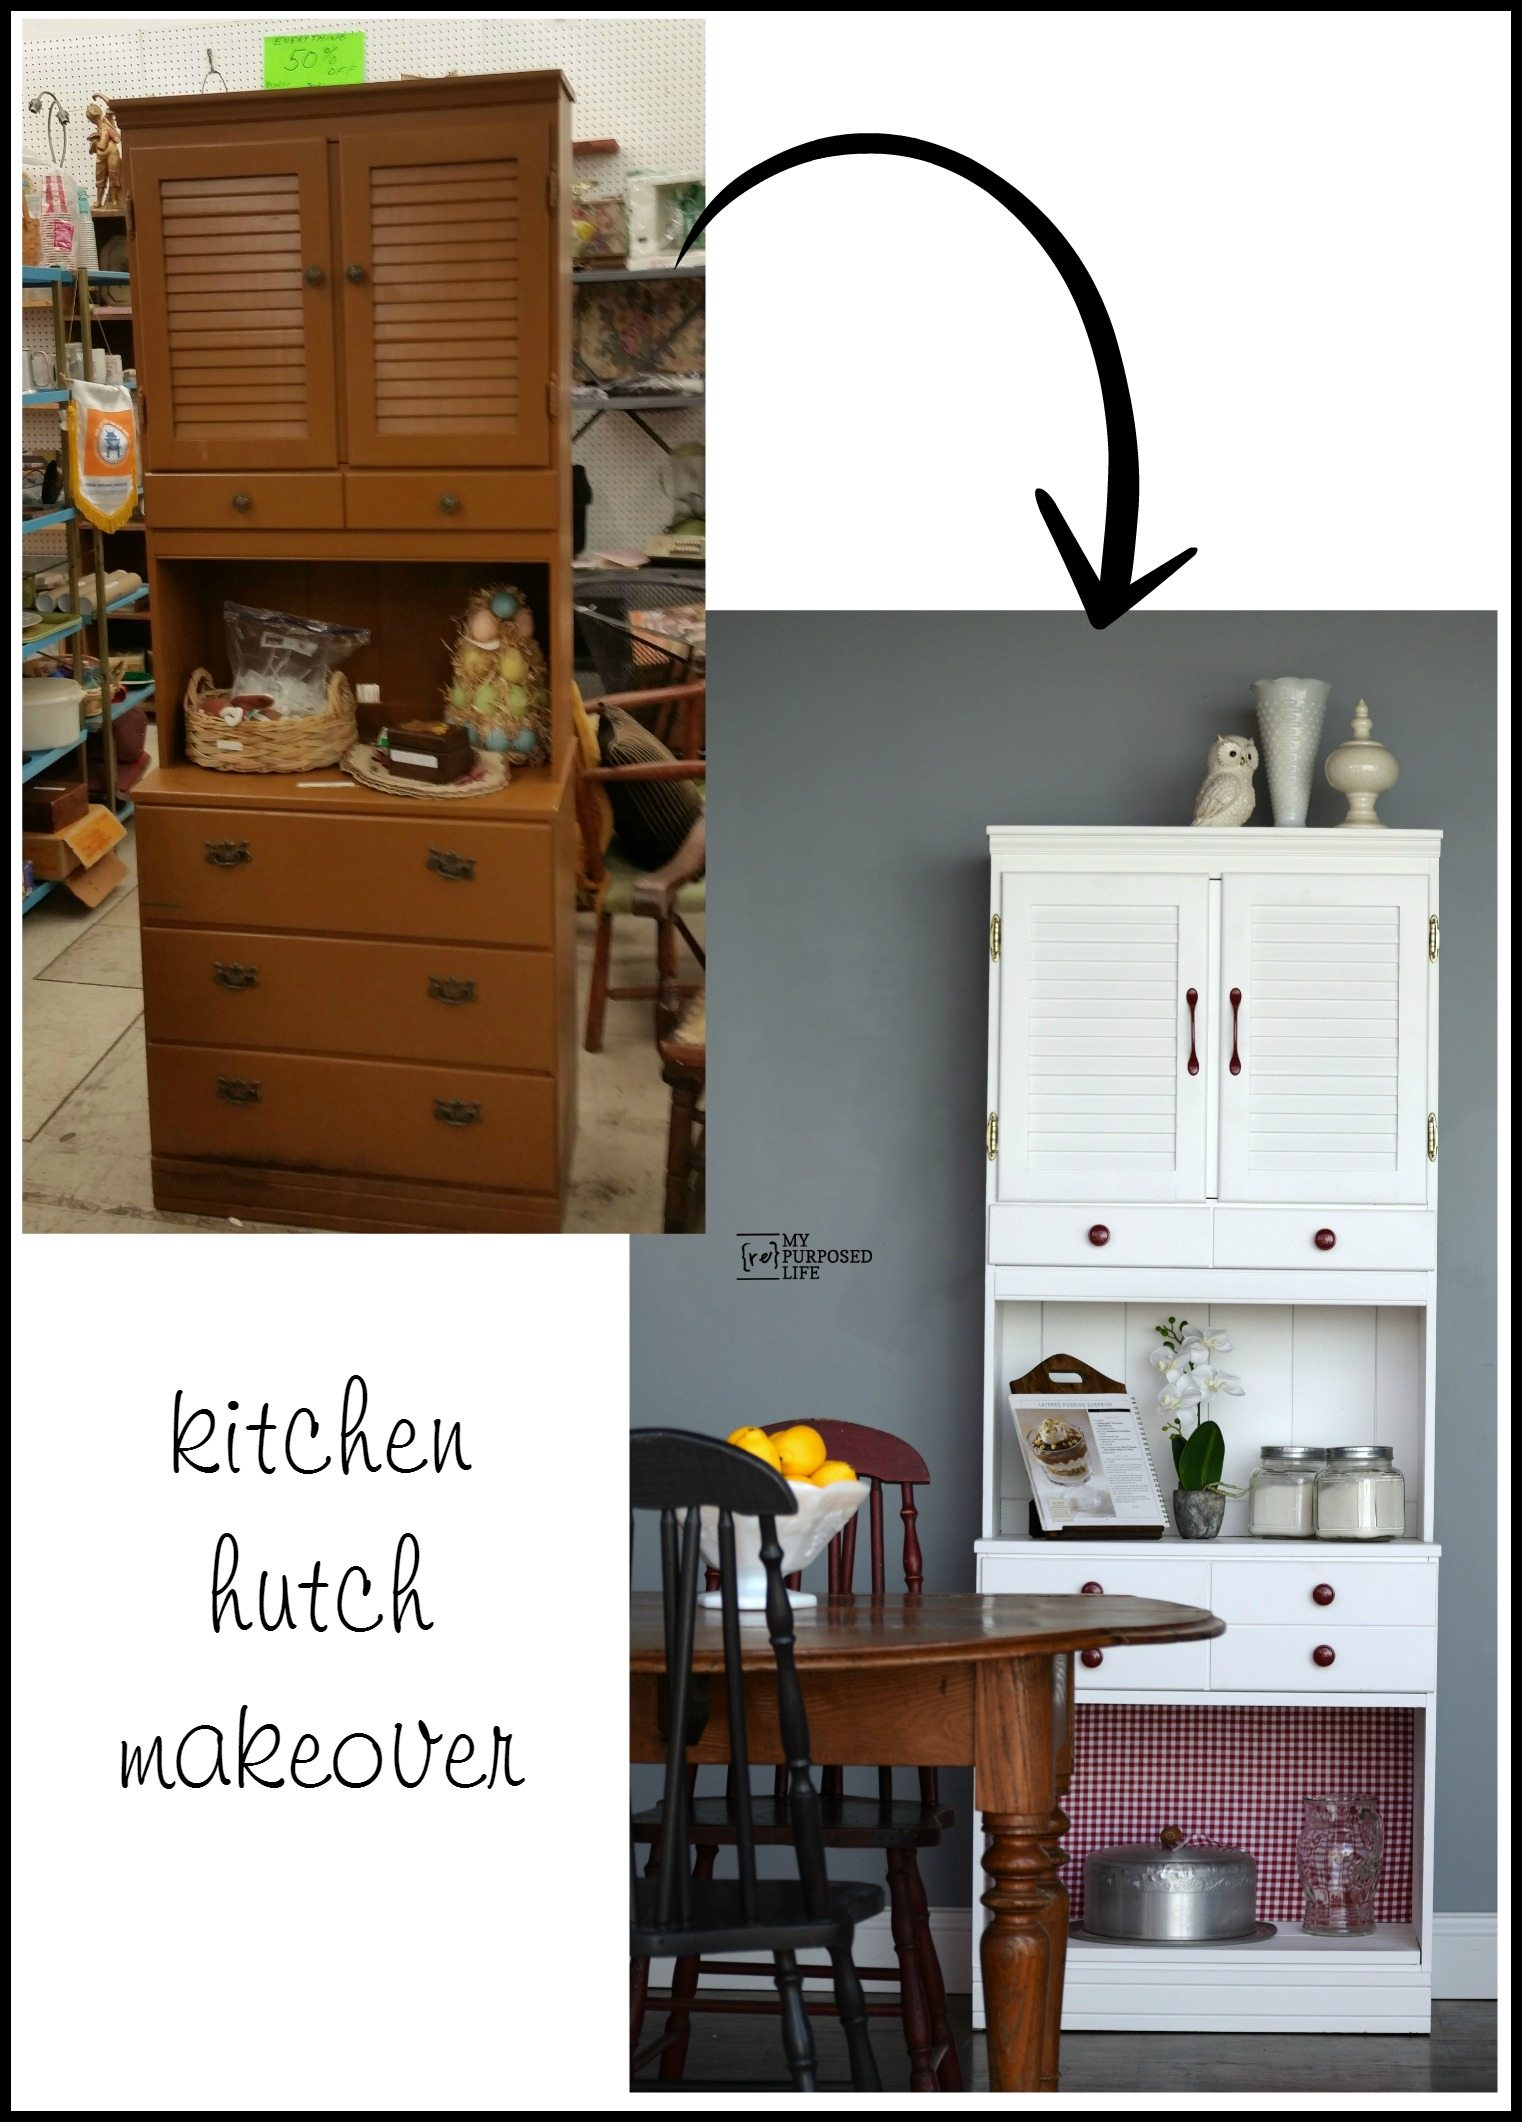 White Kitchen Hutch kitchen hutch makeover | remake - my repurposed life®